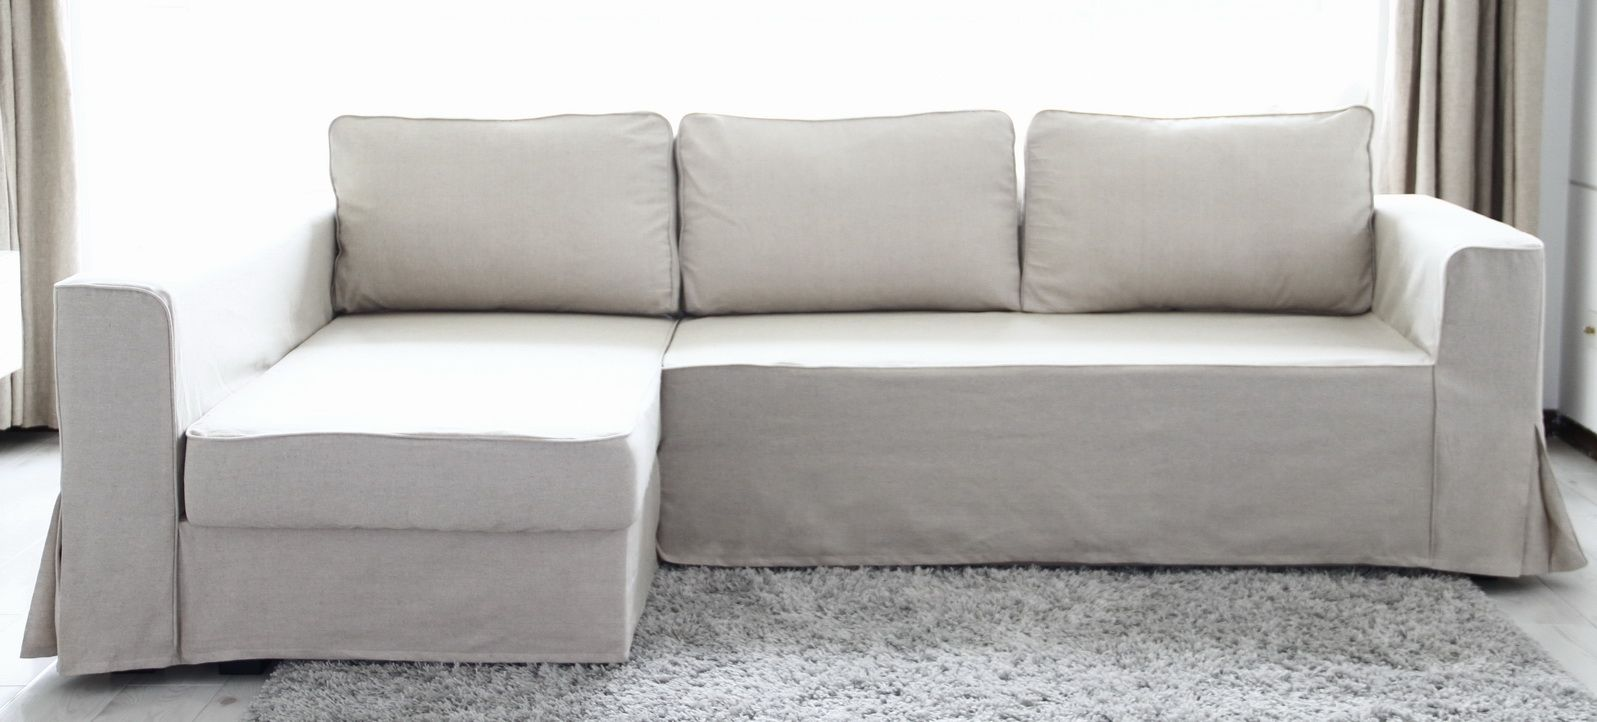 Sofa Chaise Lounge Covers